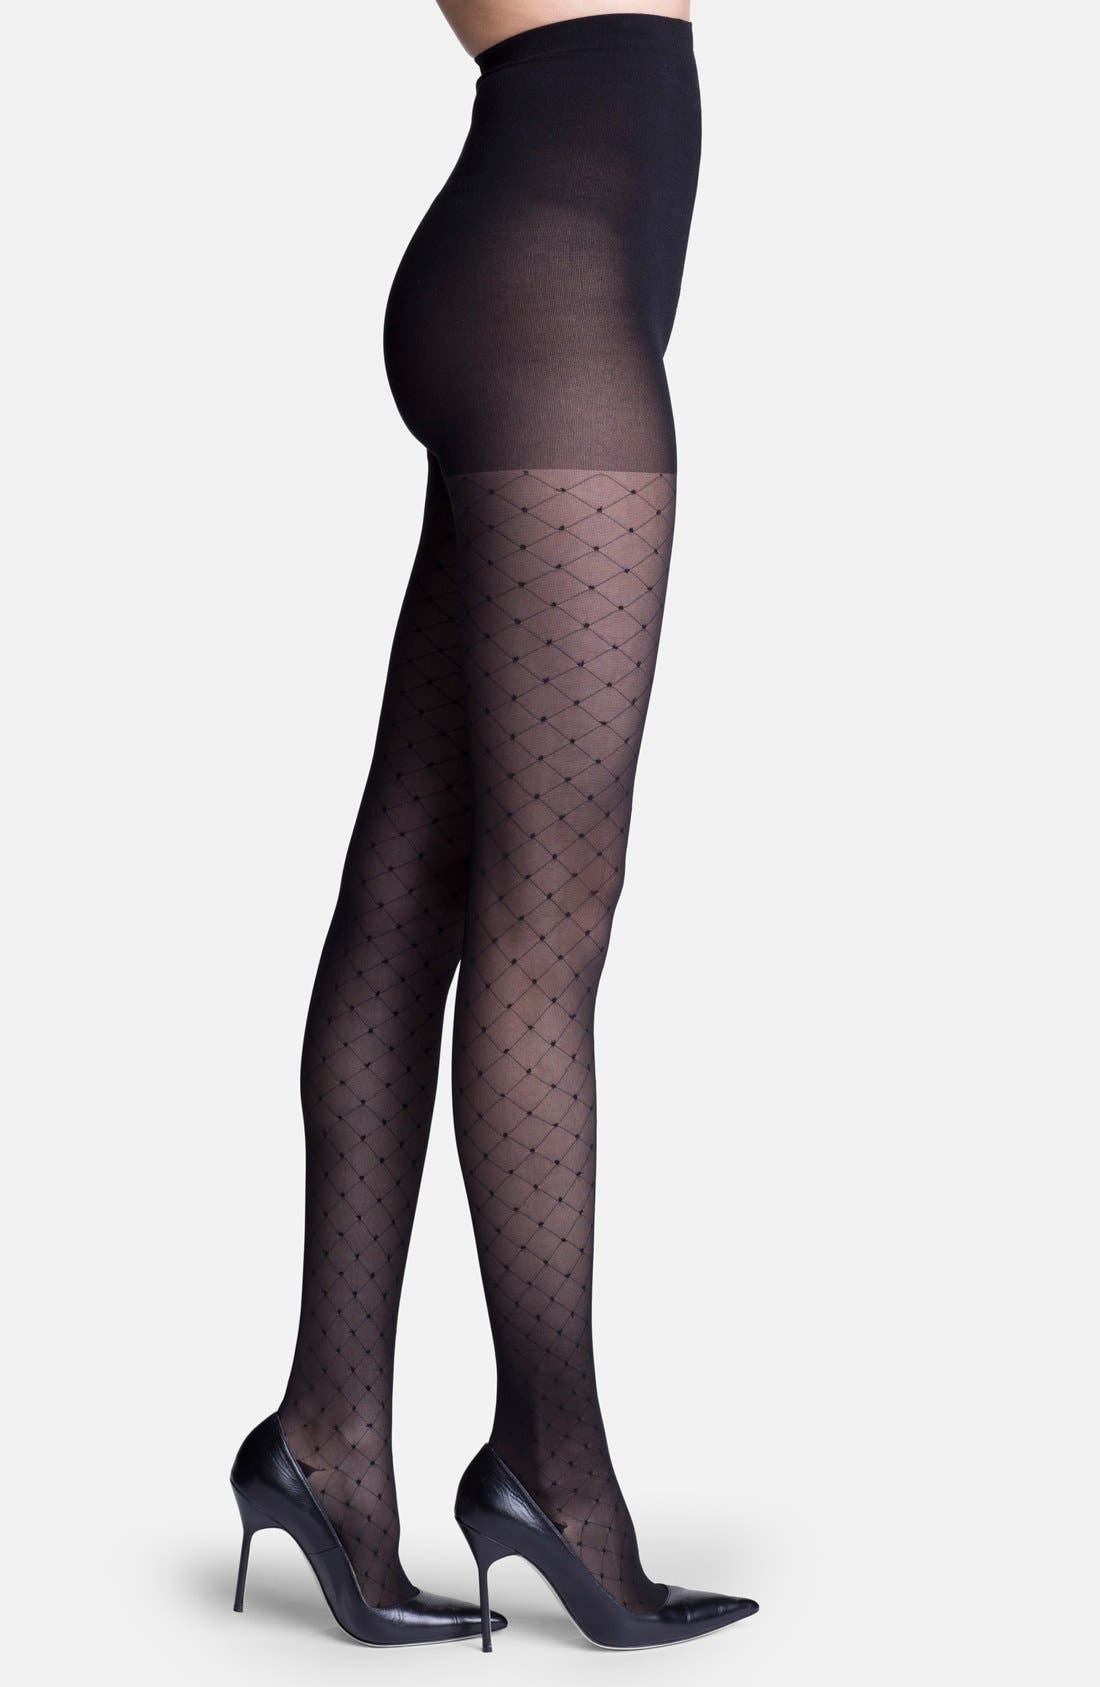 Main Image - INSIGNIA by SIGVARIS 'Starlet' Diamond Pattern Compression Pantyhose